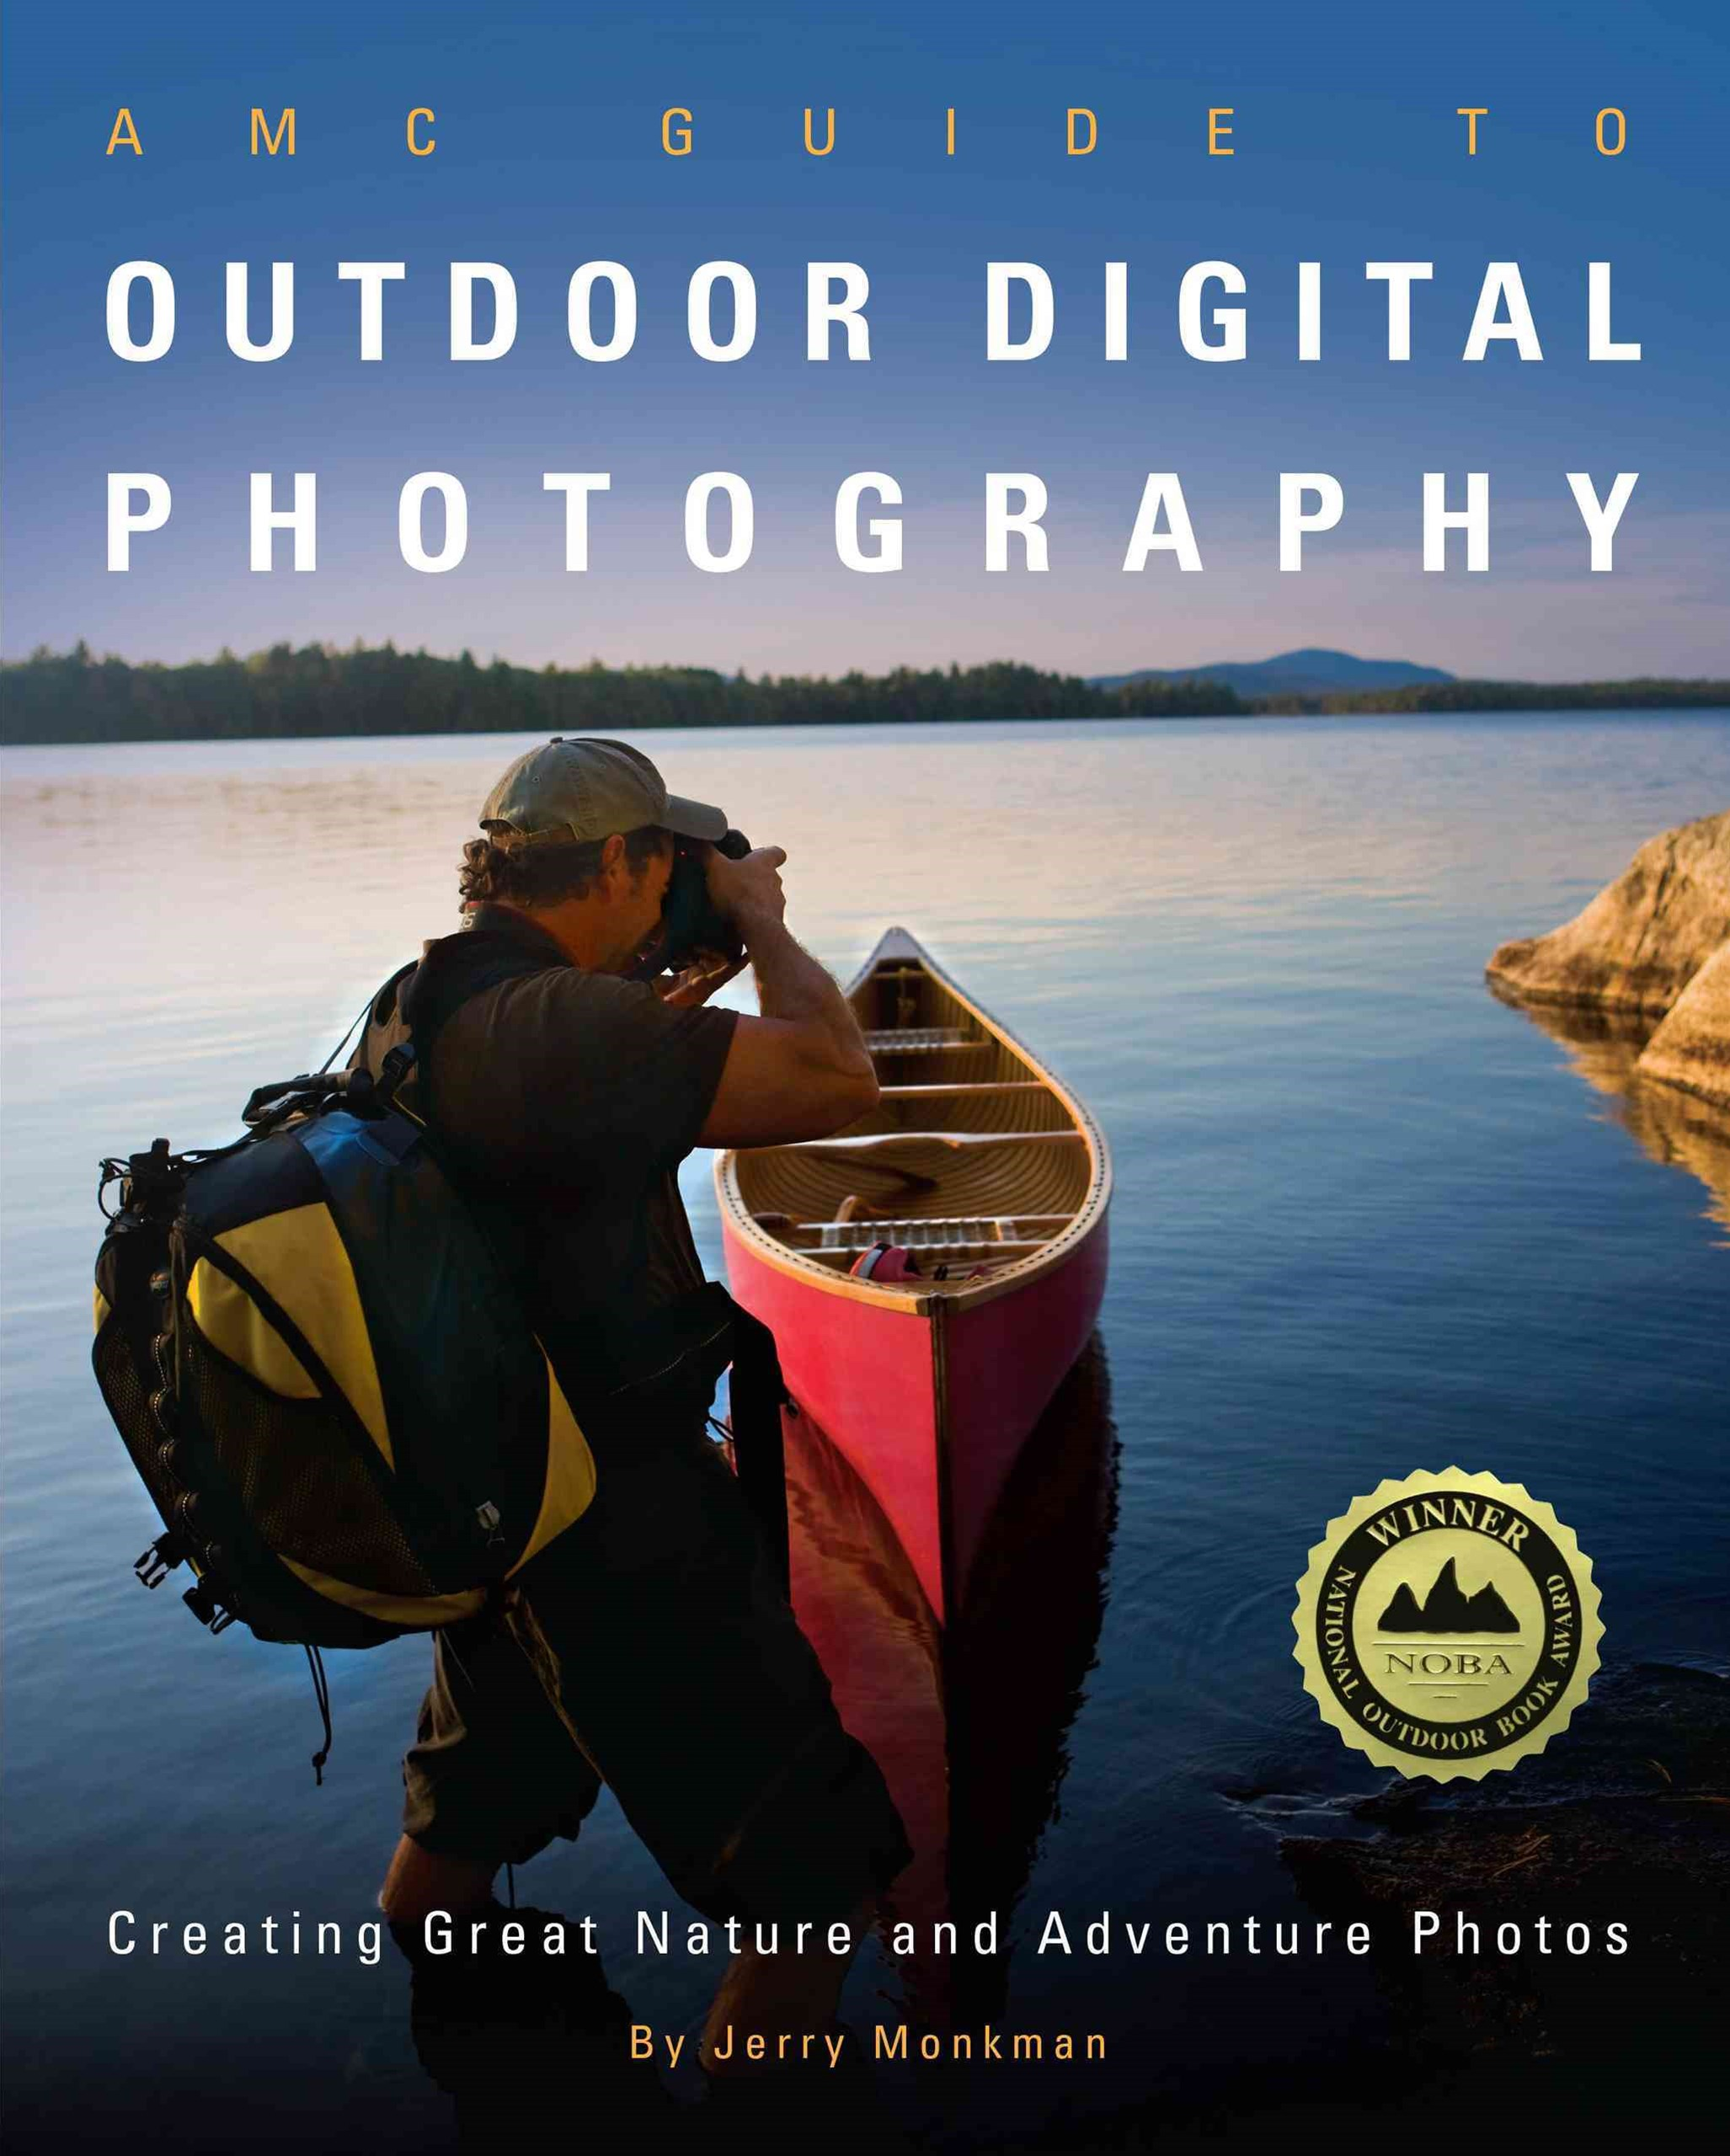 AMC Guide to Outdoor Digital Photography